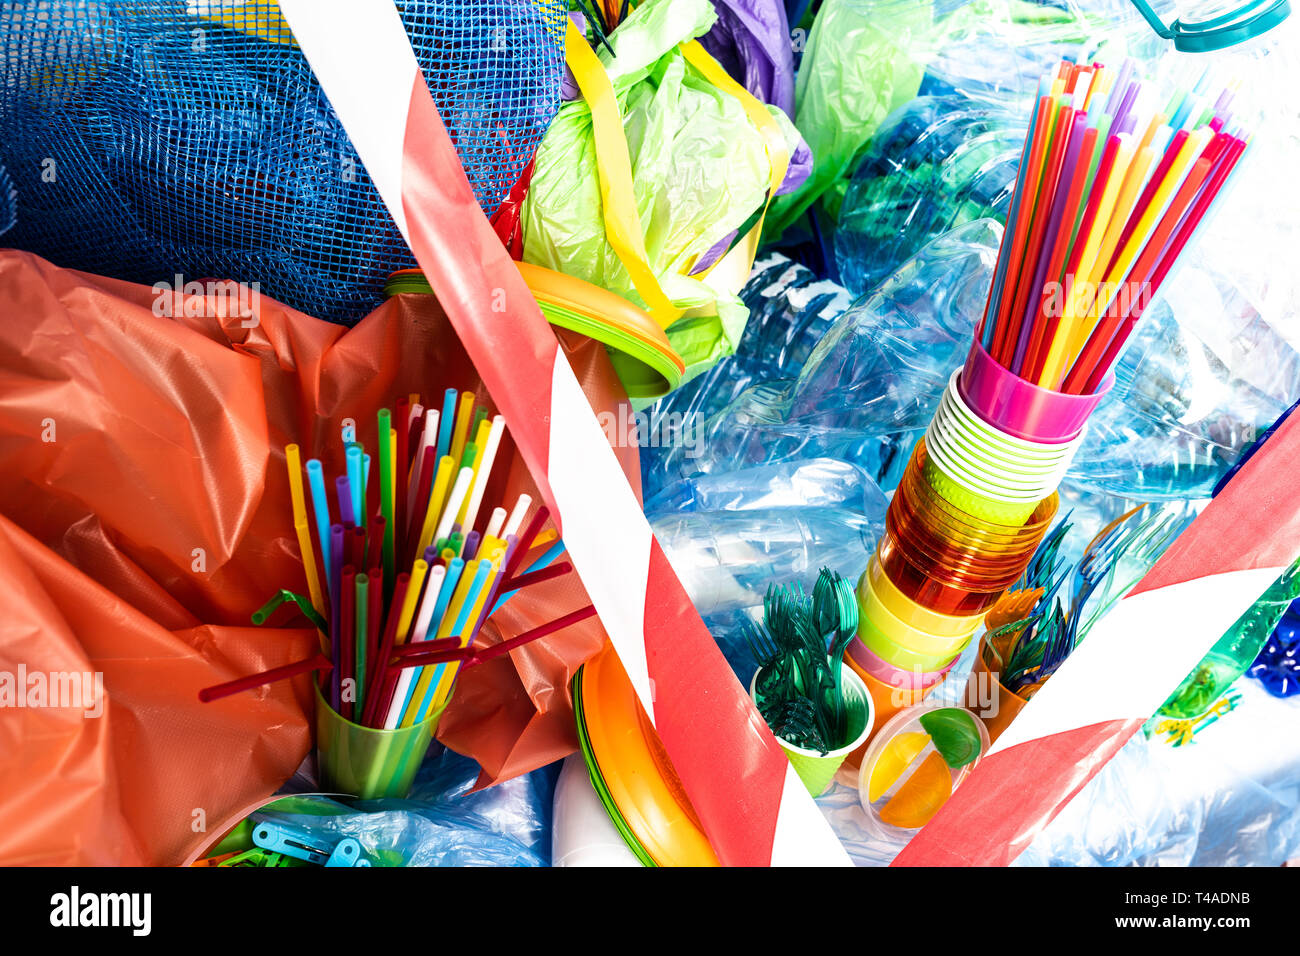 Extreme amount of different plastic tools and things - Stock Image